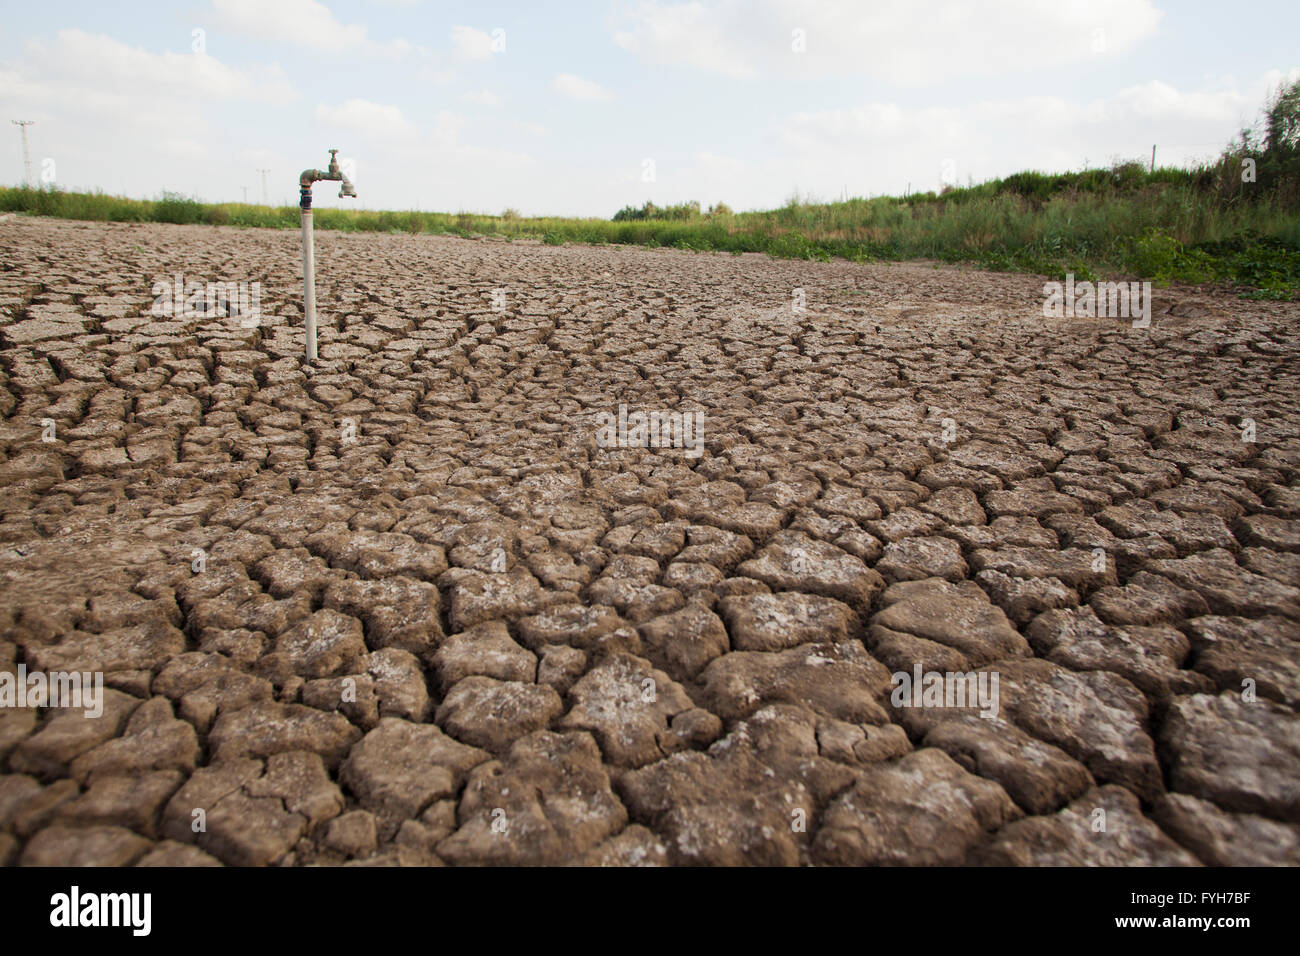 environmental concept, Water shortage and drought Dry cracked mud with a water faucet - Stock Image